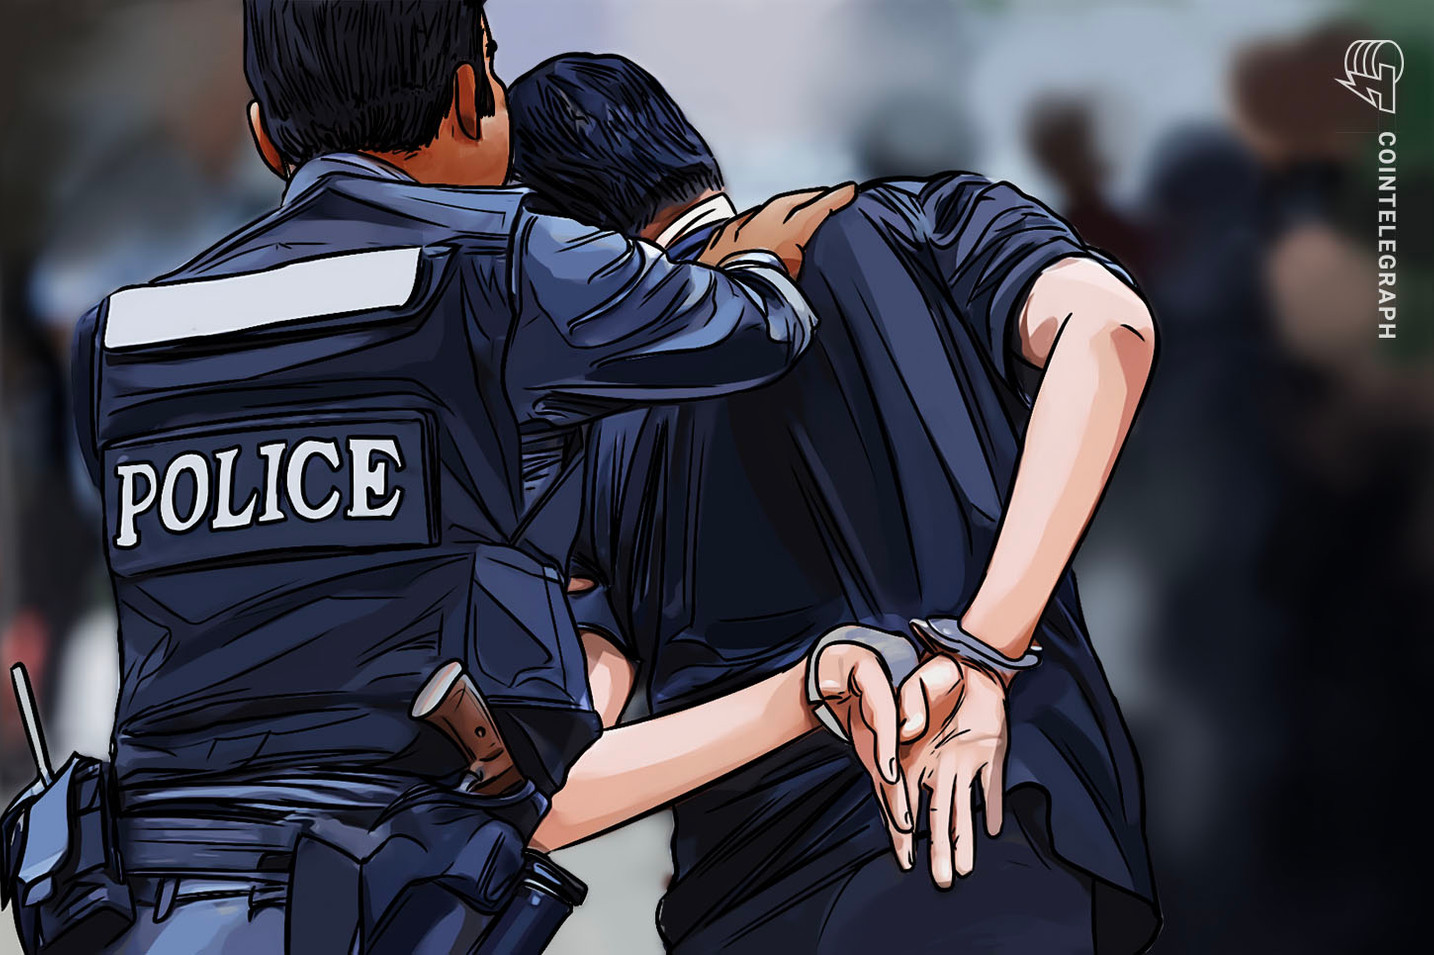 Malaysian authorities arrest crypto miners for $600K power theft